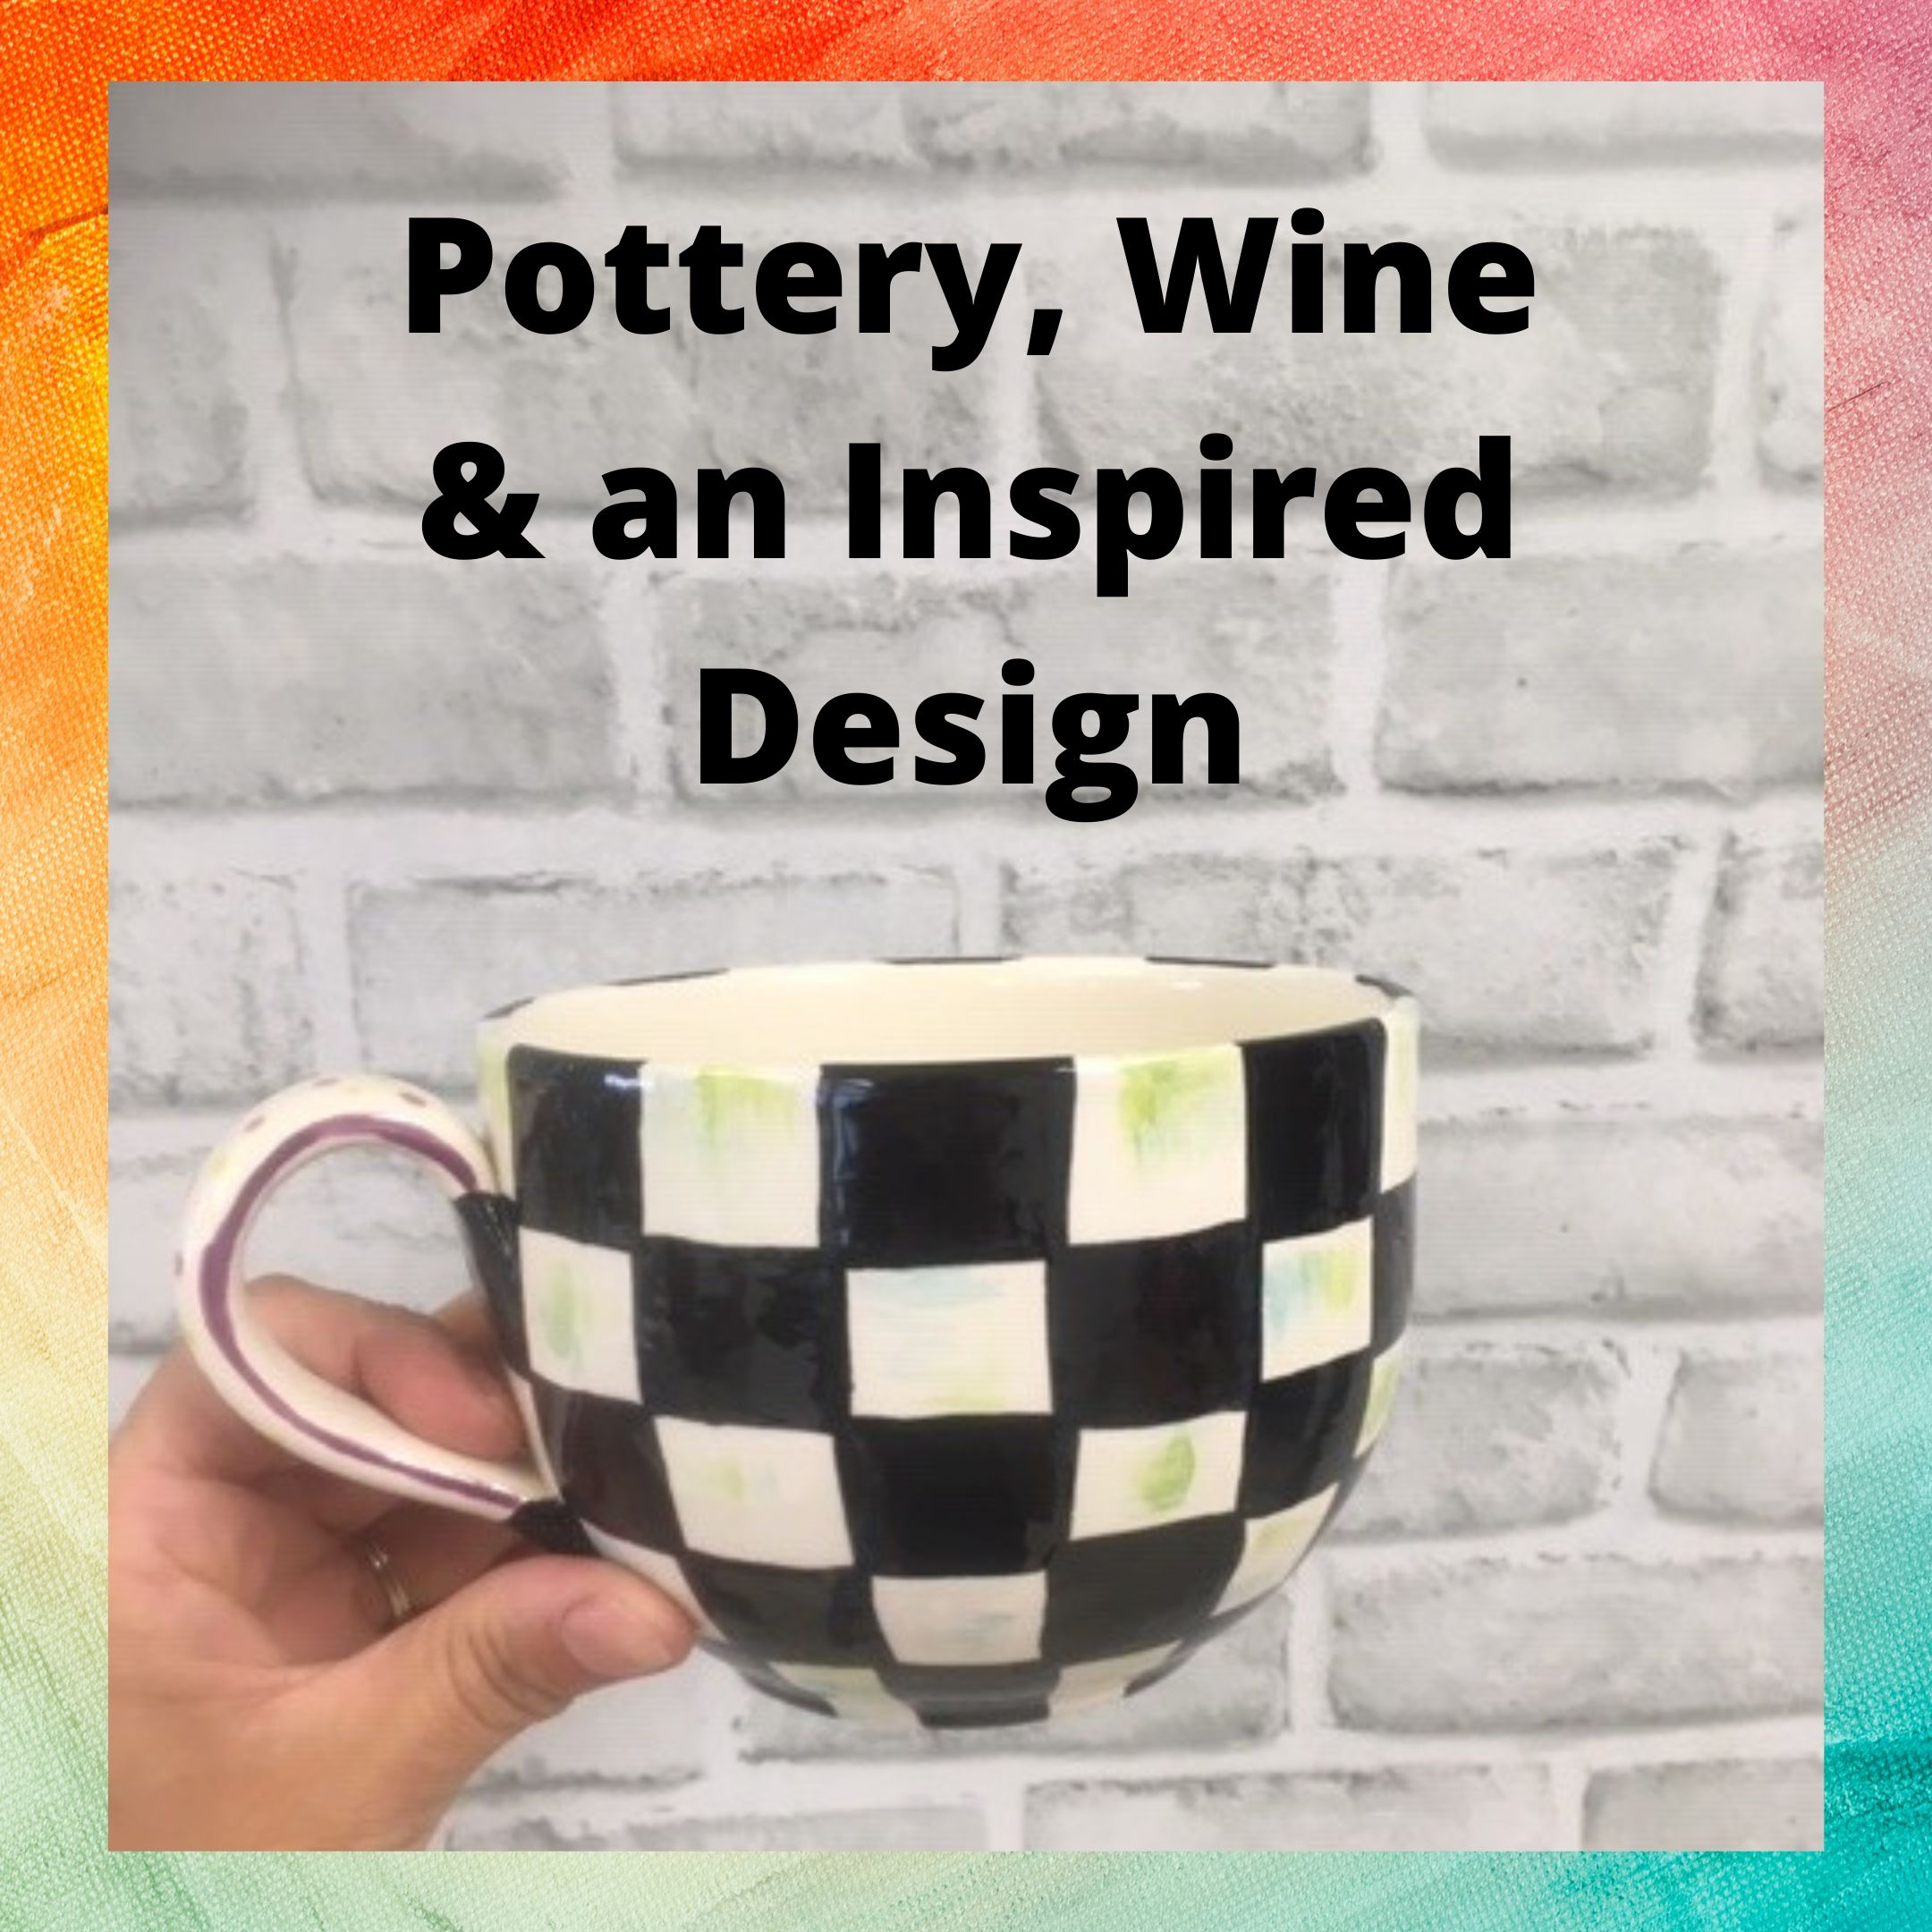 Pottery, Wine & an Inspired Design